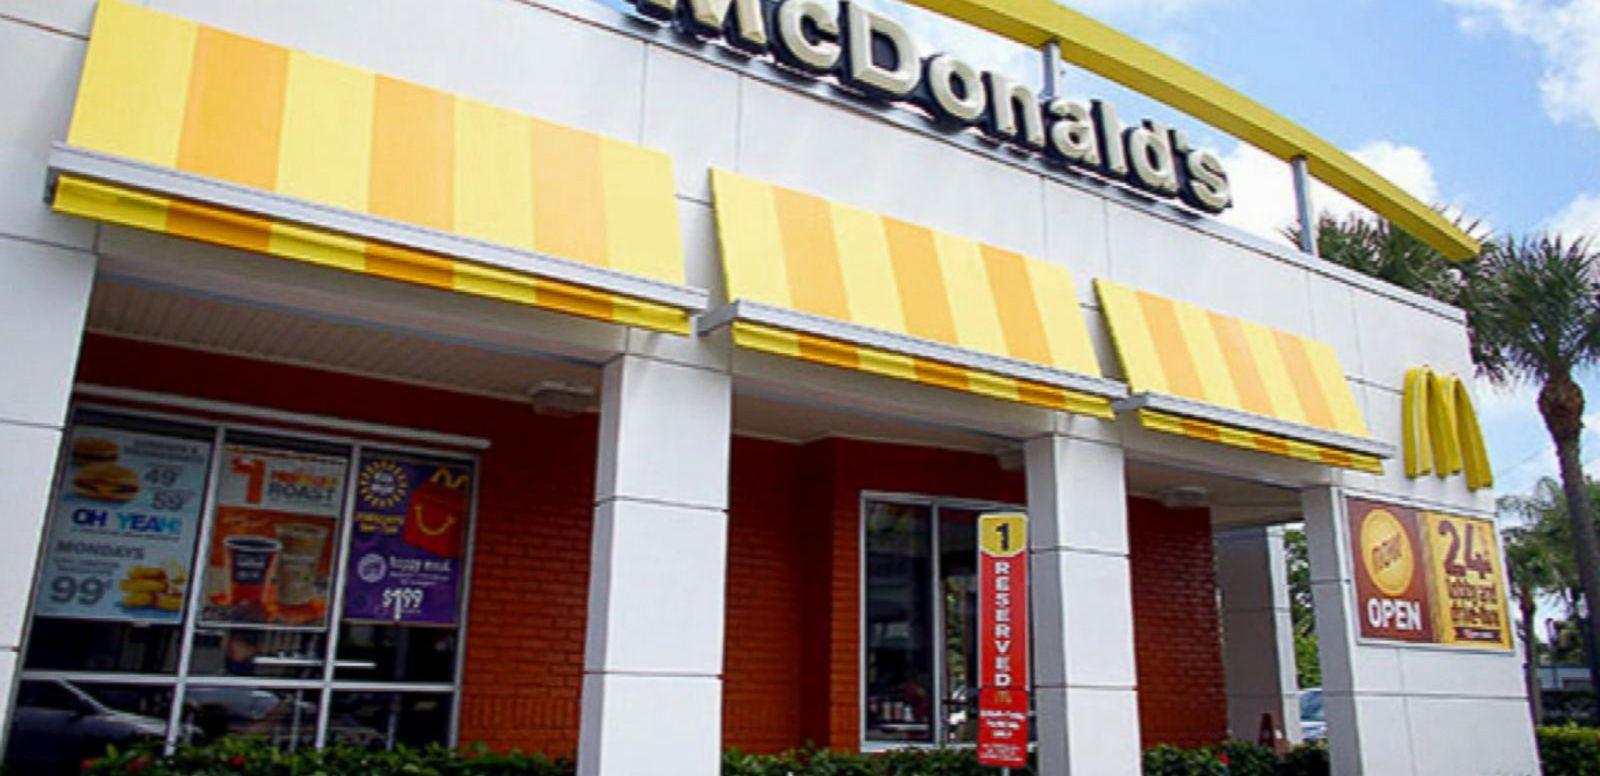 VIDEO: CEO Shakeup at McDonald's